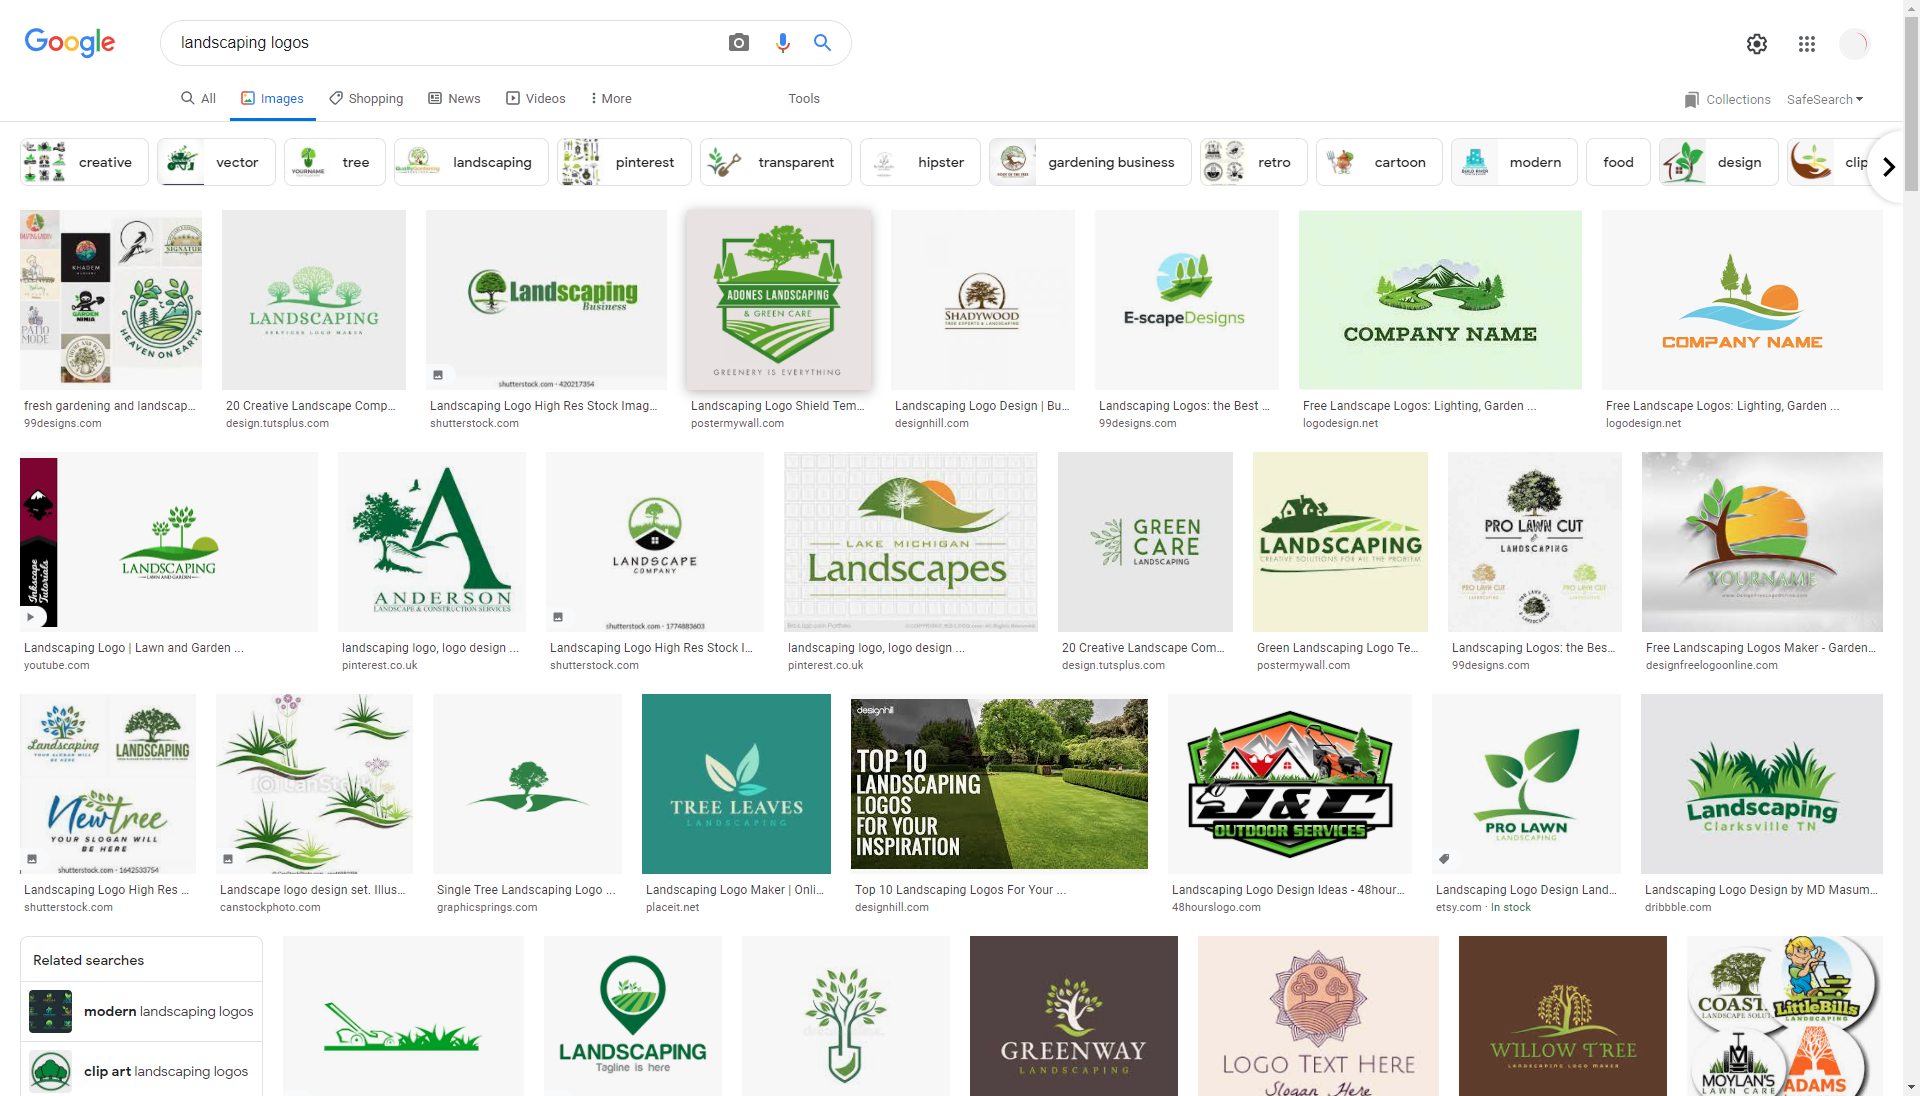 Landscaping logo search results